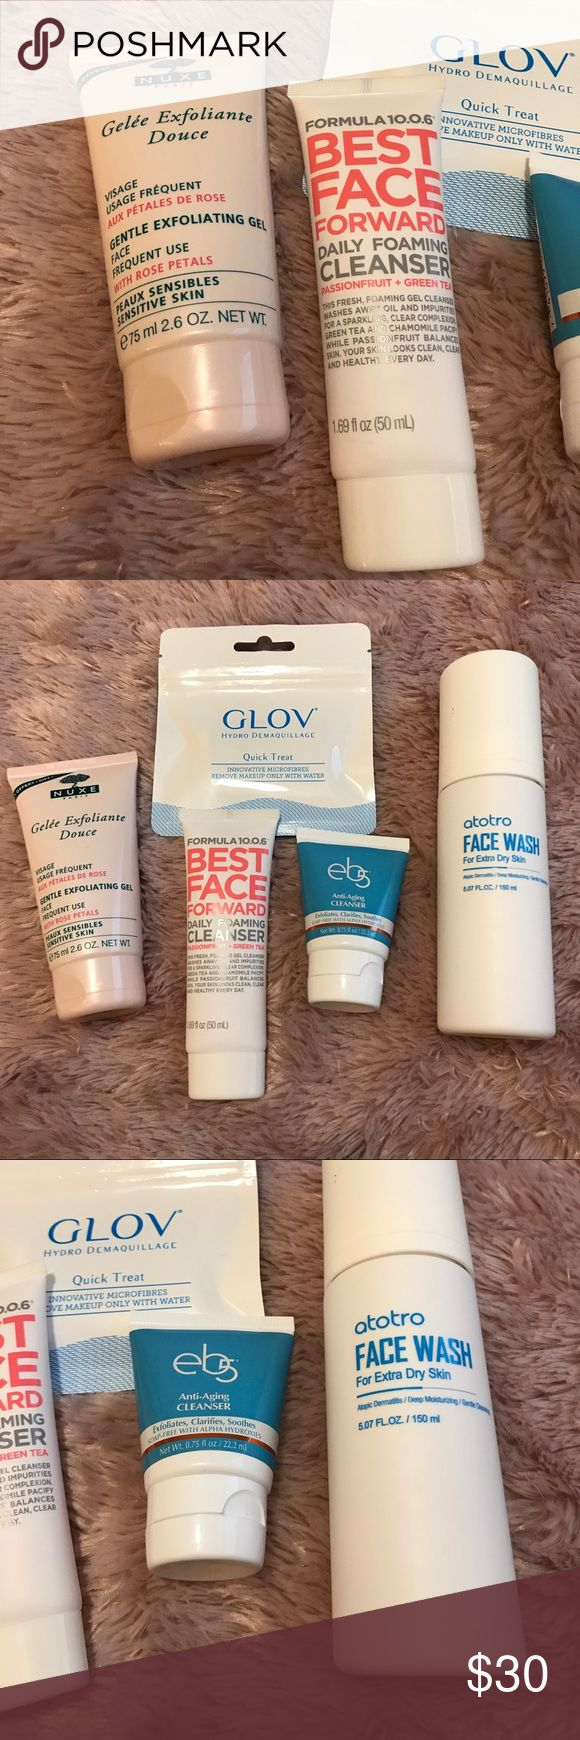 Face Wash Cleanser and Scrub Beauty Bundle Bundle includes 💙 Glov Quick Treatment Makeup Remover Microfiber Cloth 💙 Nuxe Gentle Exfoliating Gel 💙 Formula 10.0.6 Best Face Forward Daily Foaming Cleanser 💙 eb5 Anti-Aging Cleanser 💙 Atotro Korean Skincare Face Wash 💙 All products are like new. Only used the Nuxe a couple times and the atotro wash a few times. Cleaning out my stash. Fast shipping. Nuxe Other